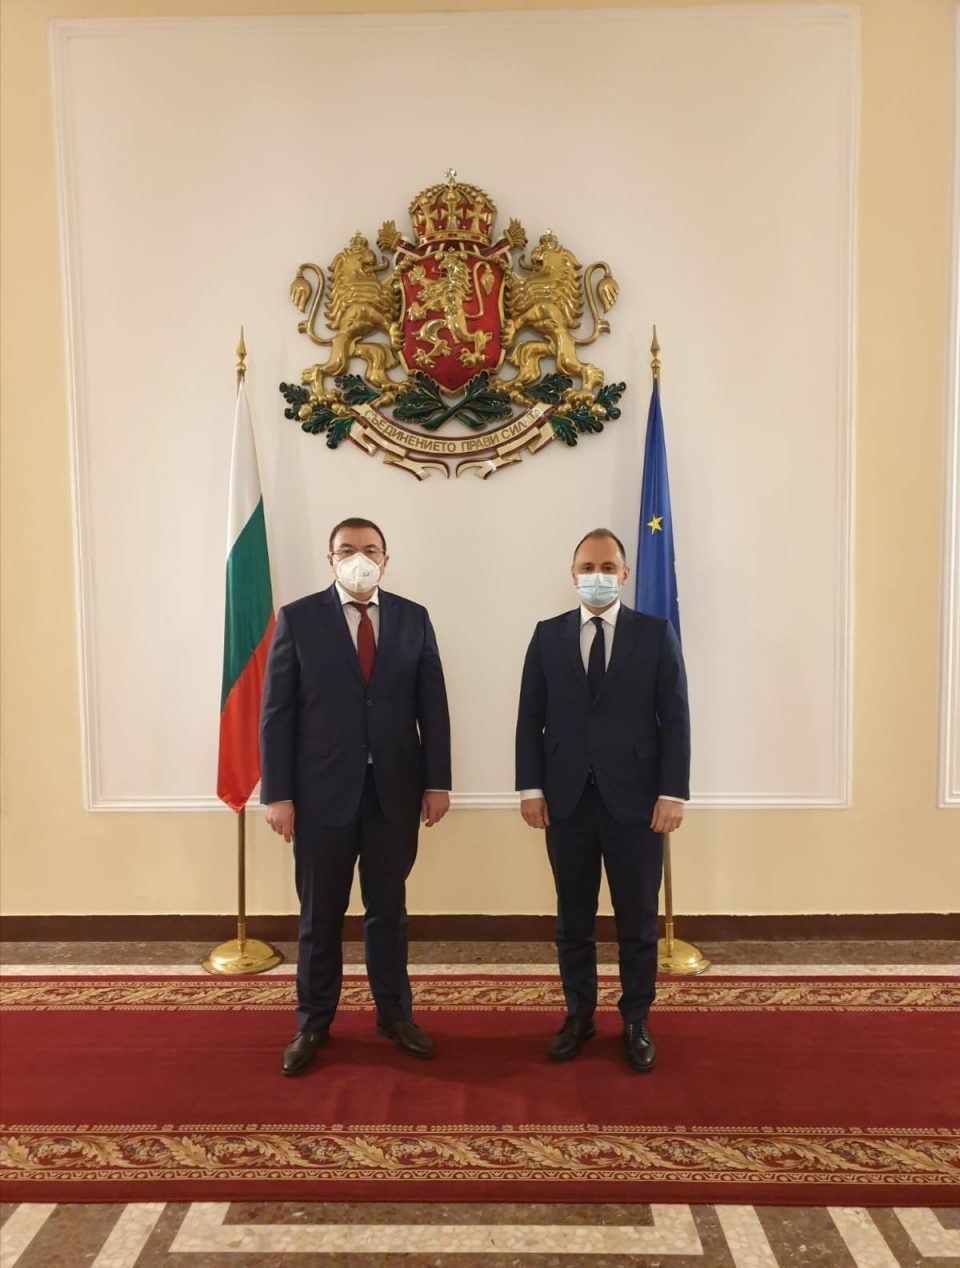 Filipce in Sofia to discuss Macedonia receiving part of Covid vaccines that will arrive in Bulgaria